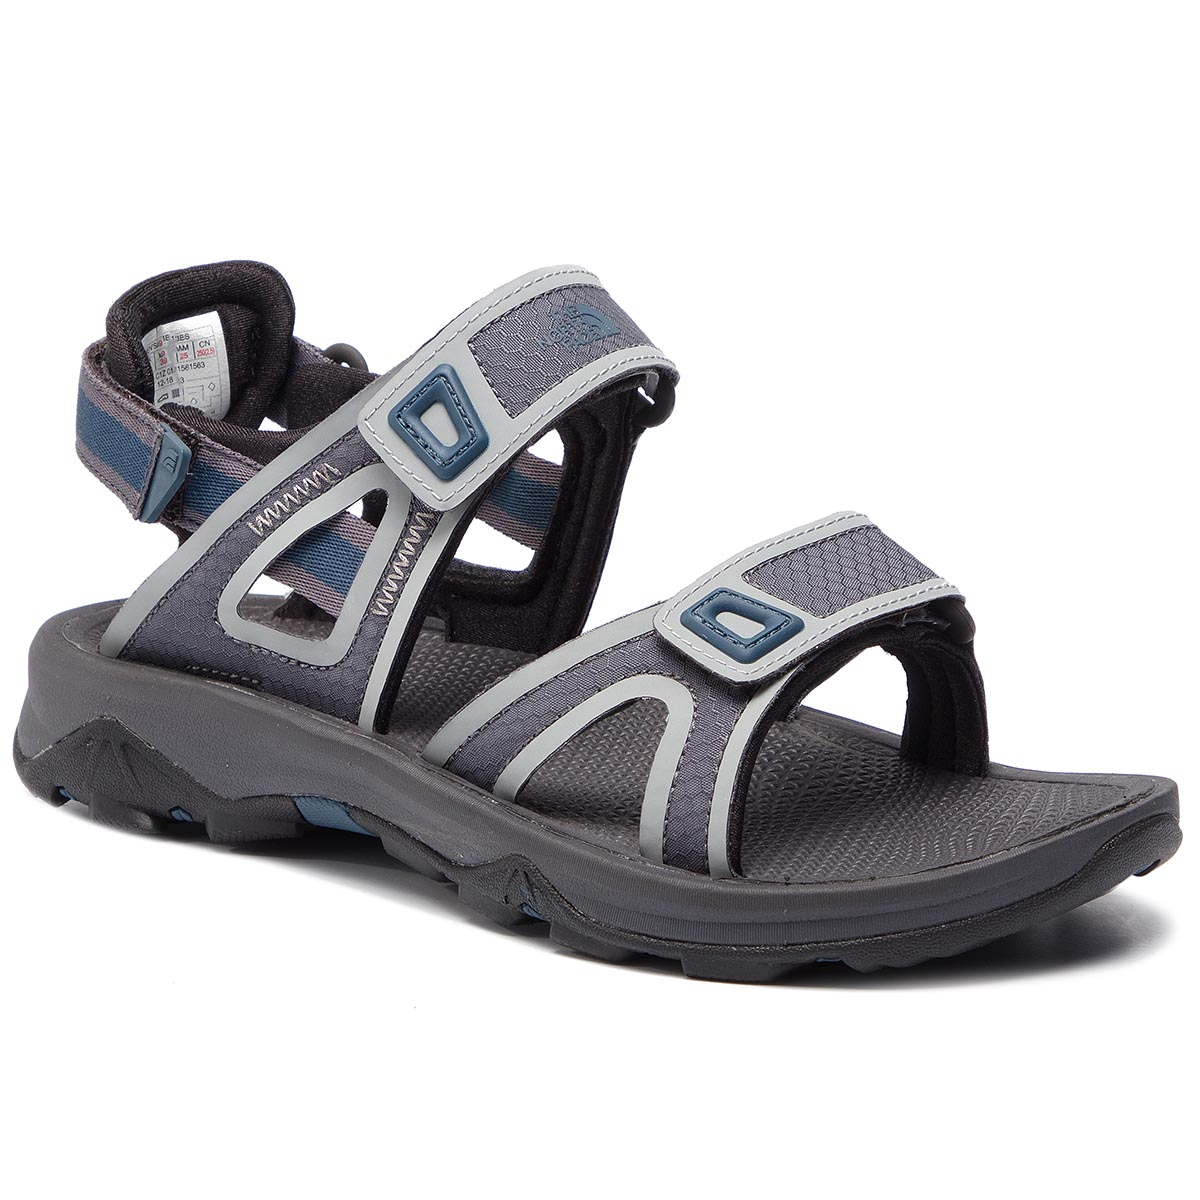 Sandale THE NORTH FACE - Hedgehog Sandal II T0CC3DCIZ Blackened Pearl/Shady Blue